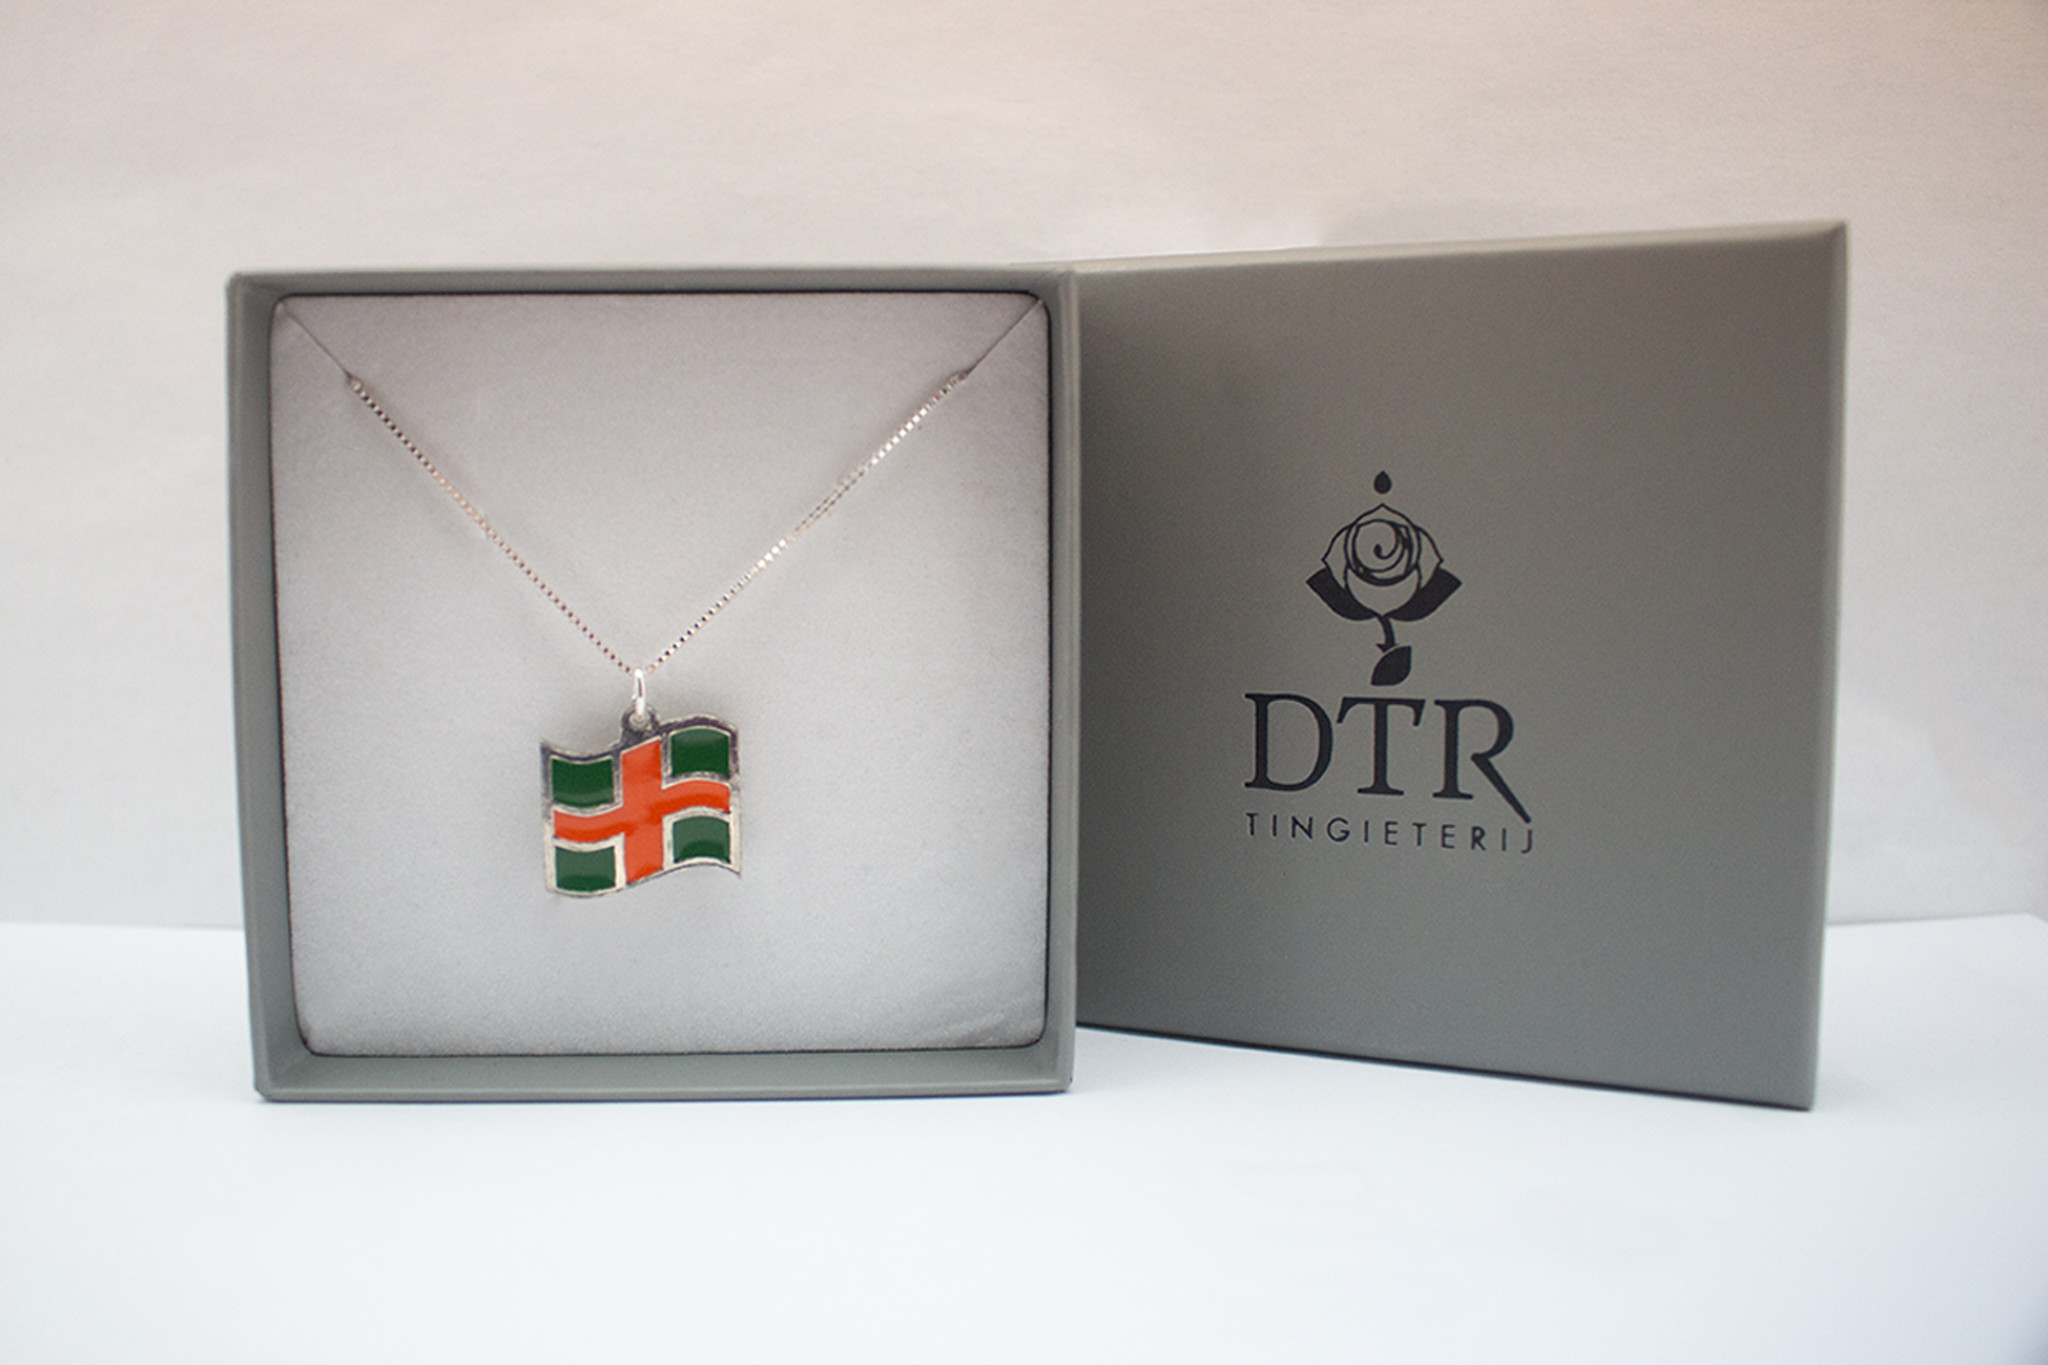 DTR Four Days Marches flag pendant with necklace